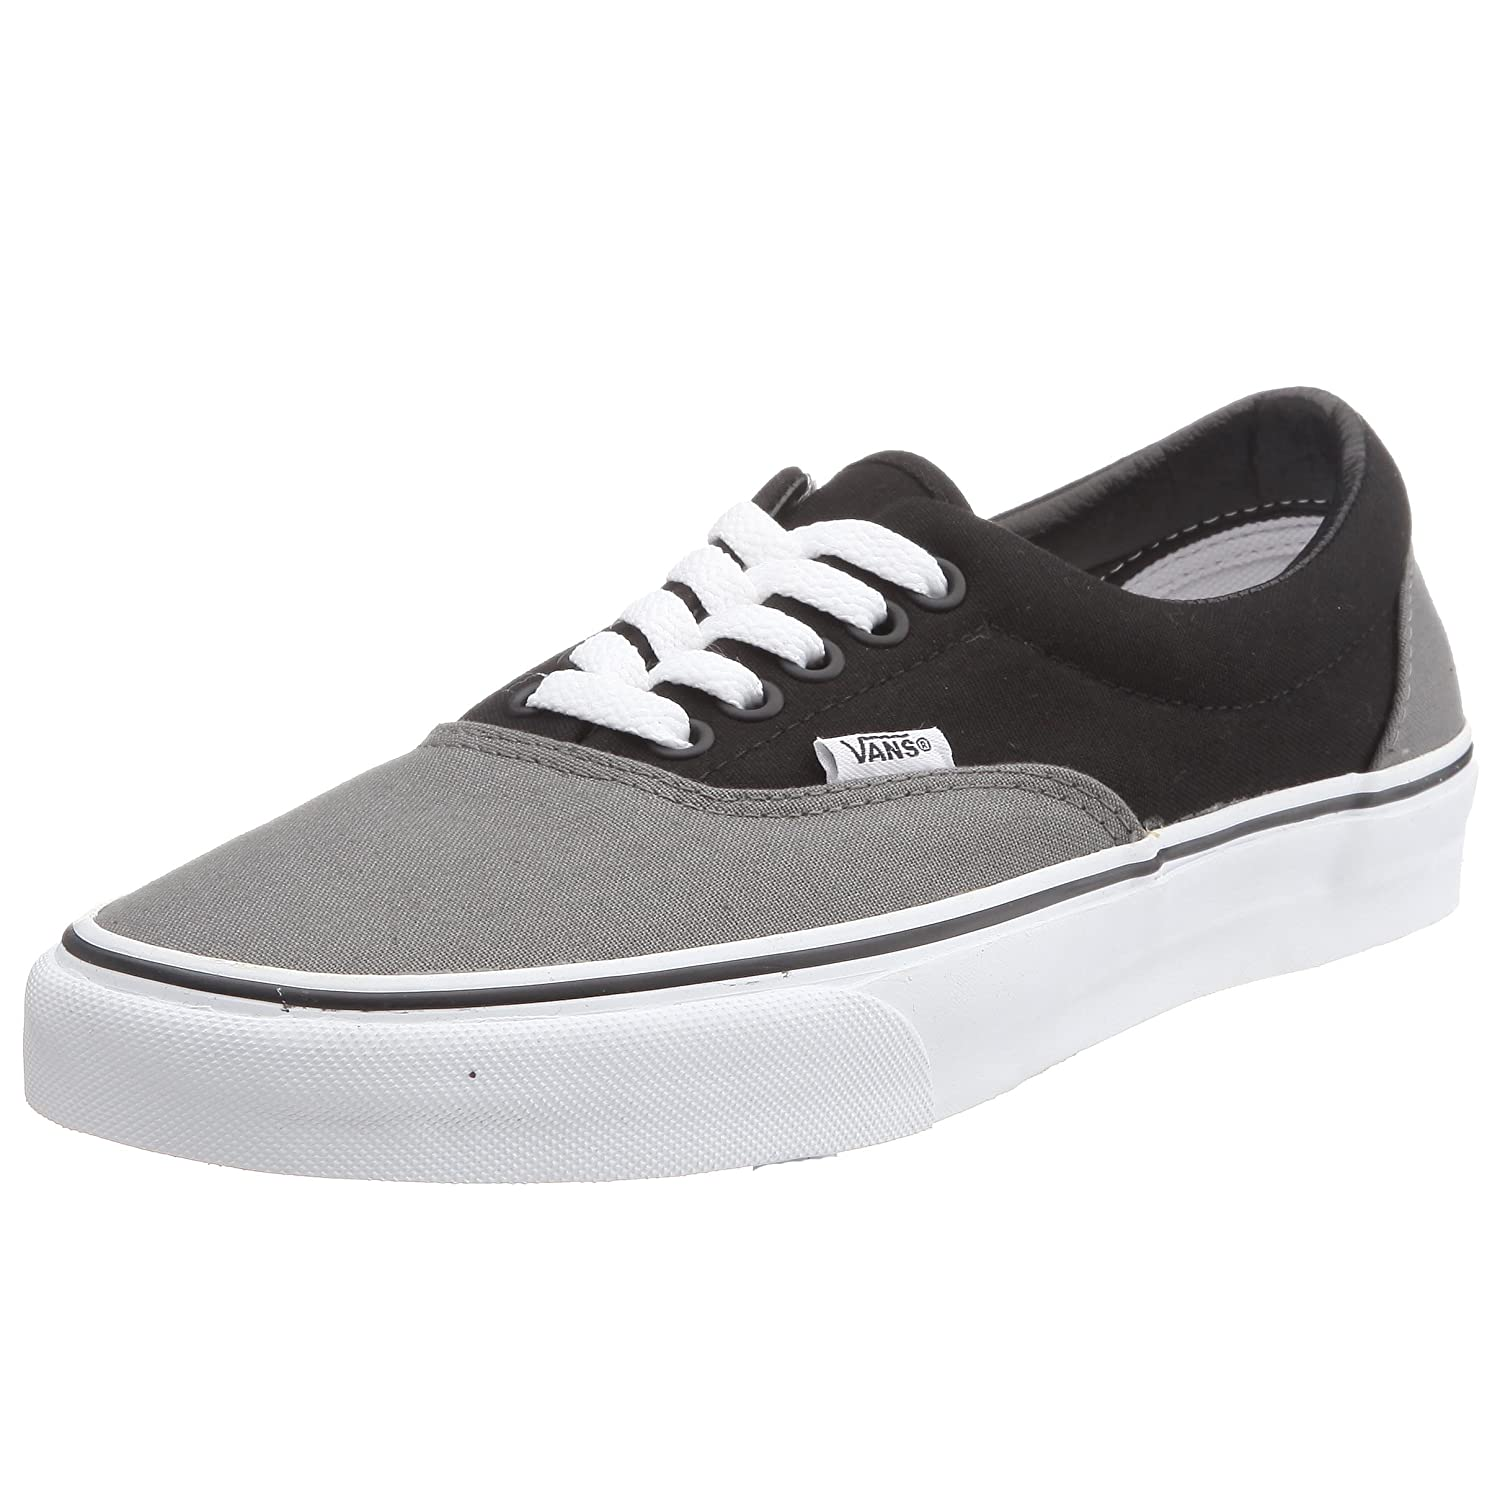 9cc671708b3 Vans Unisex Era Skate Shoes